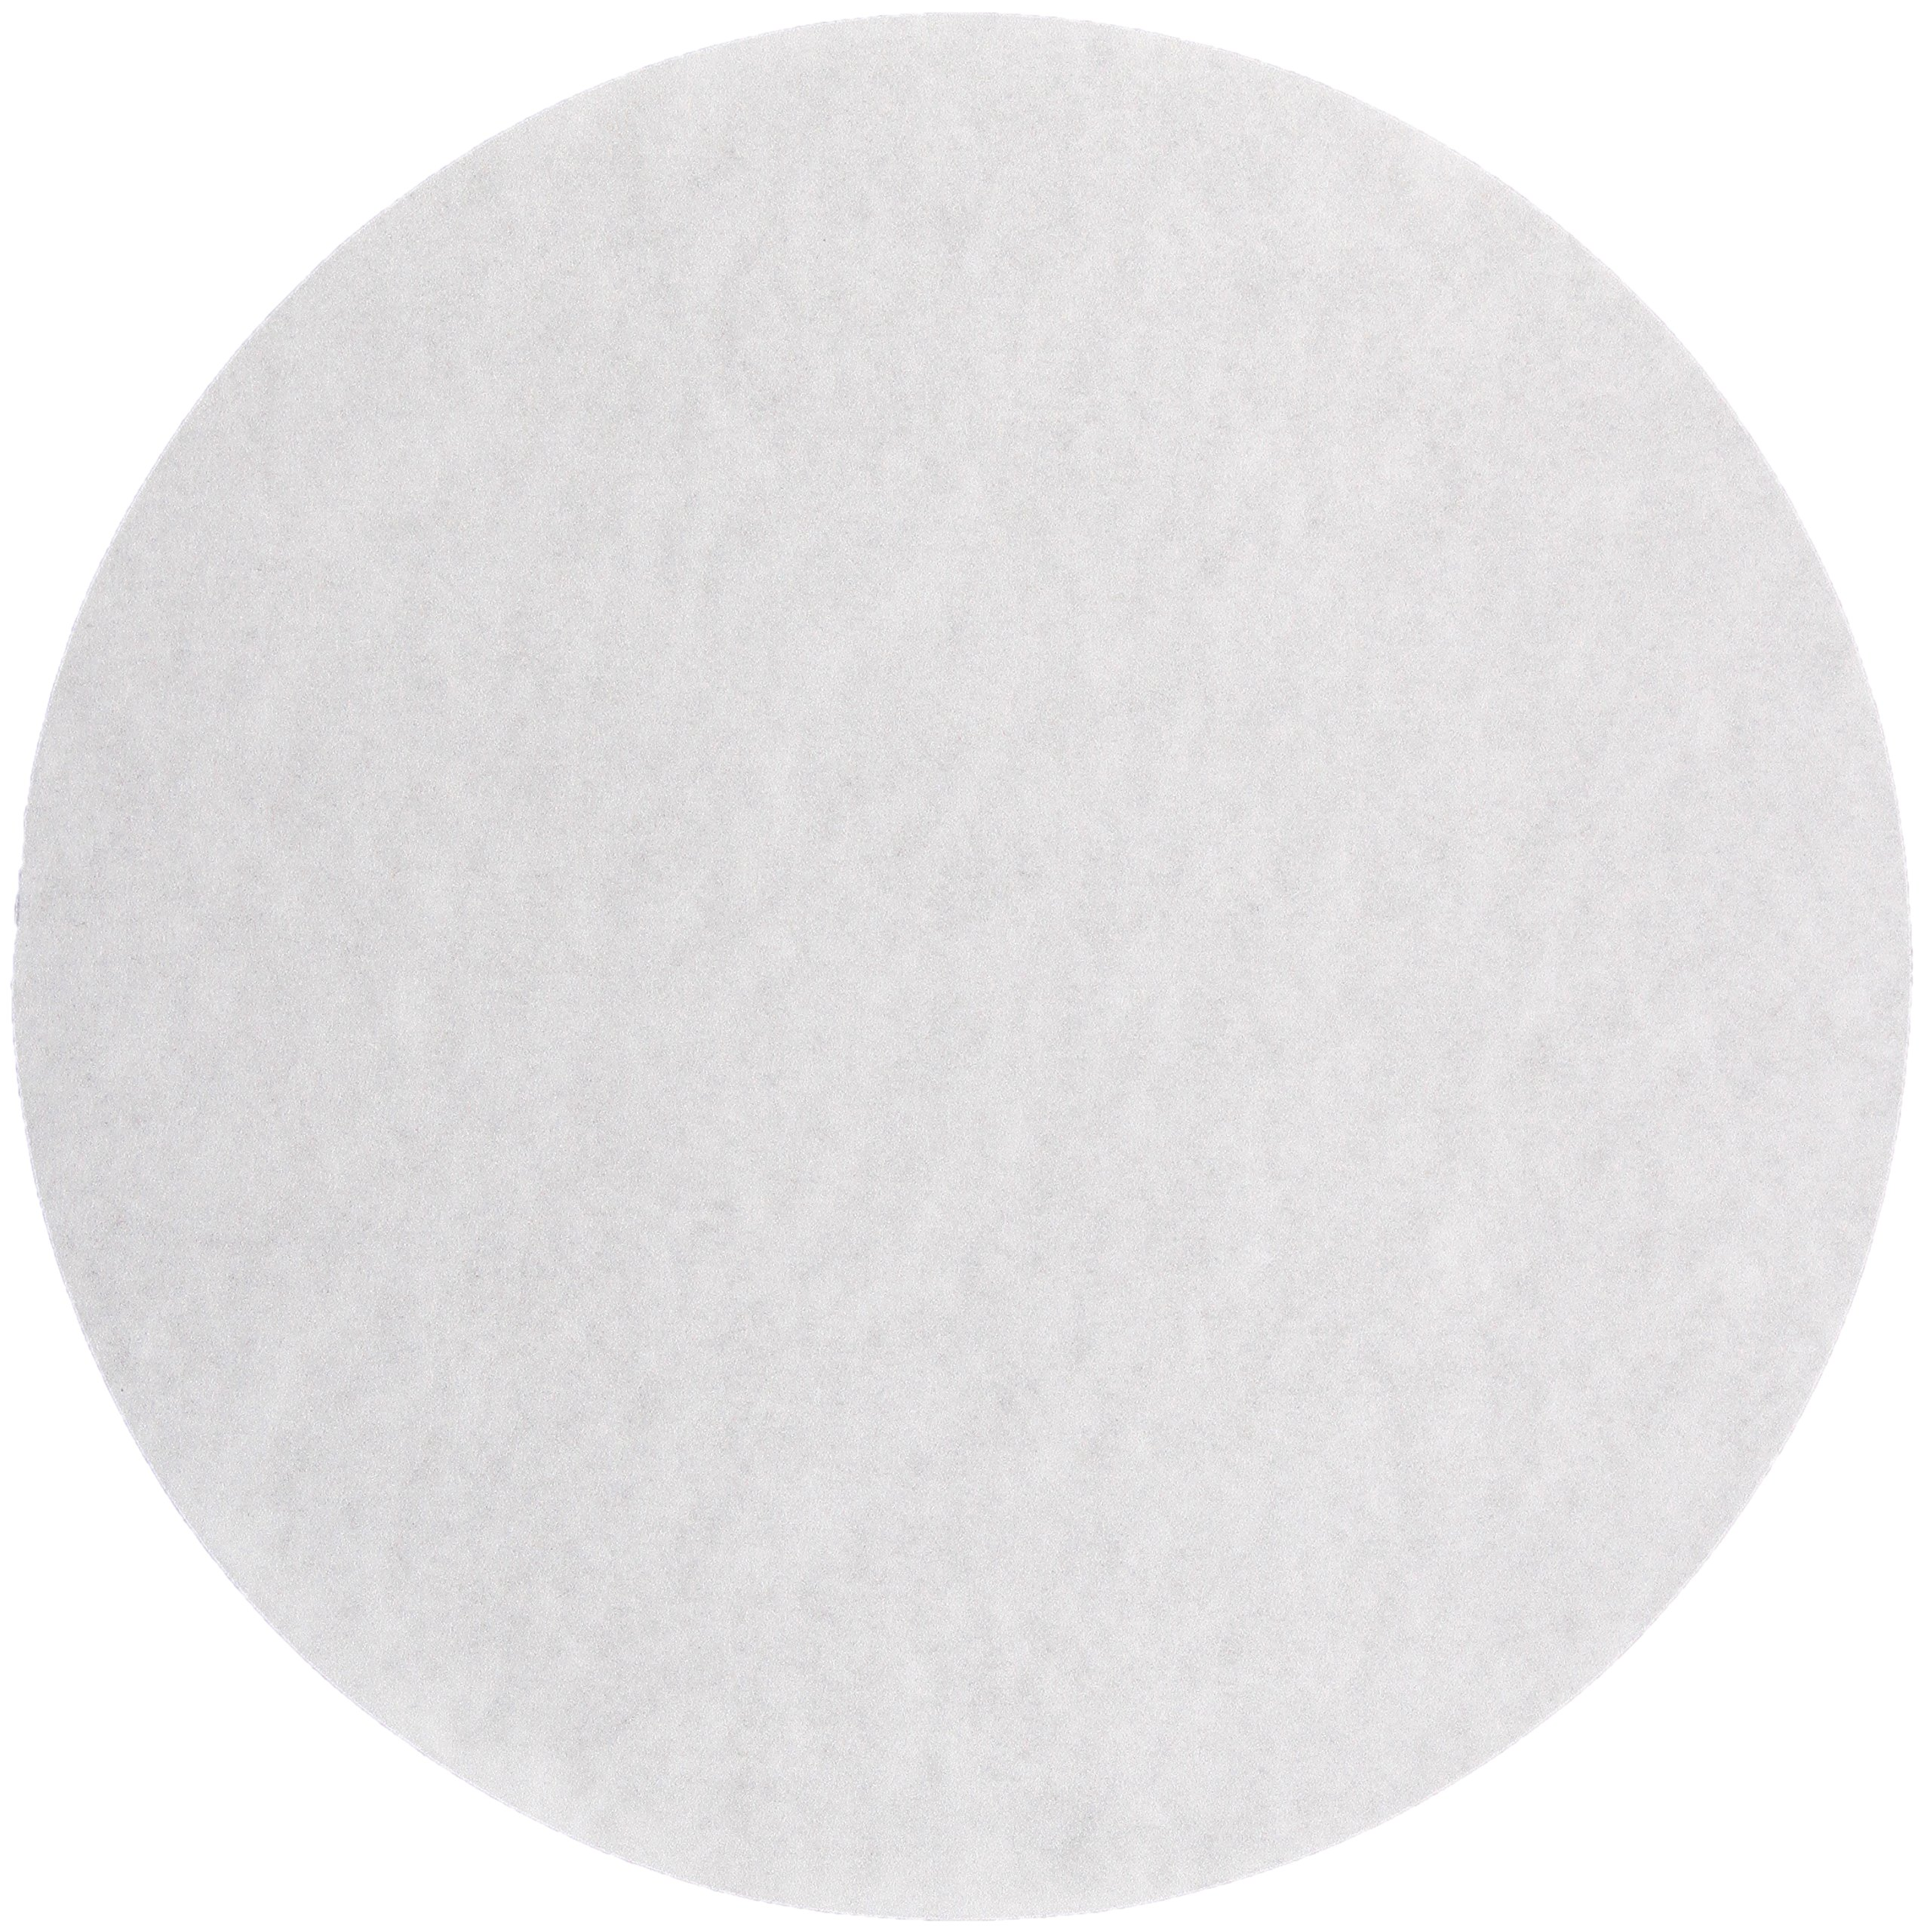 GE Whatman 10347530 Cellulose Qualitative Standard Filter Paper for Technical Use, Shark Skin Grade, Circle, 320mm Diameter (Pack of 100) by Whatman